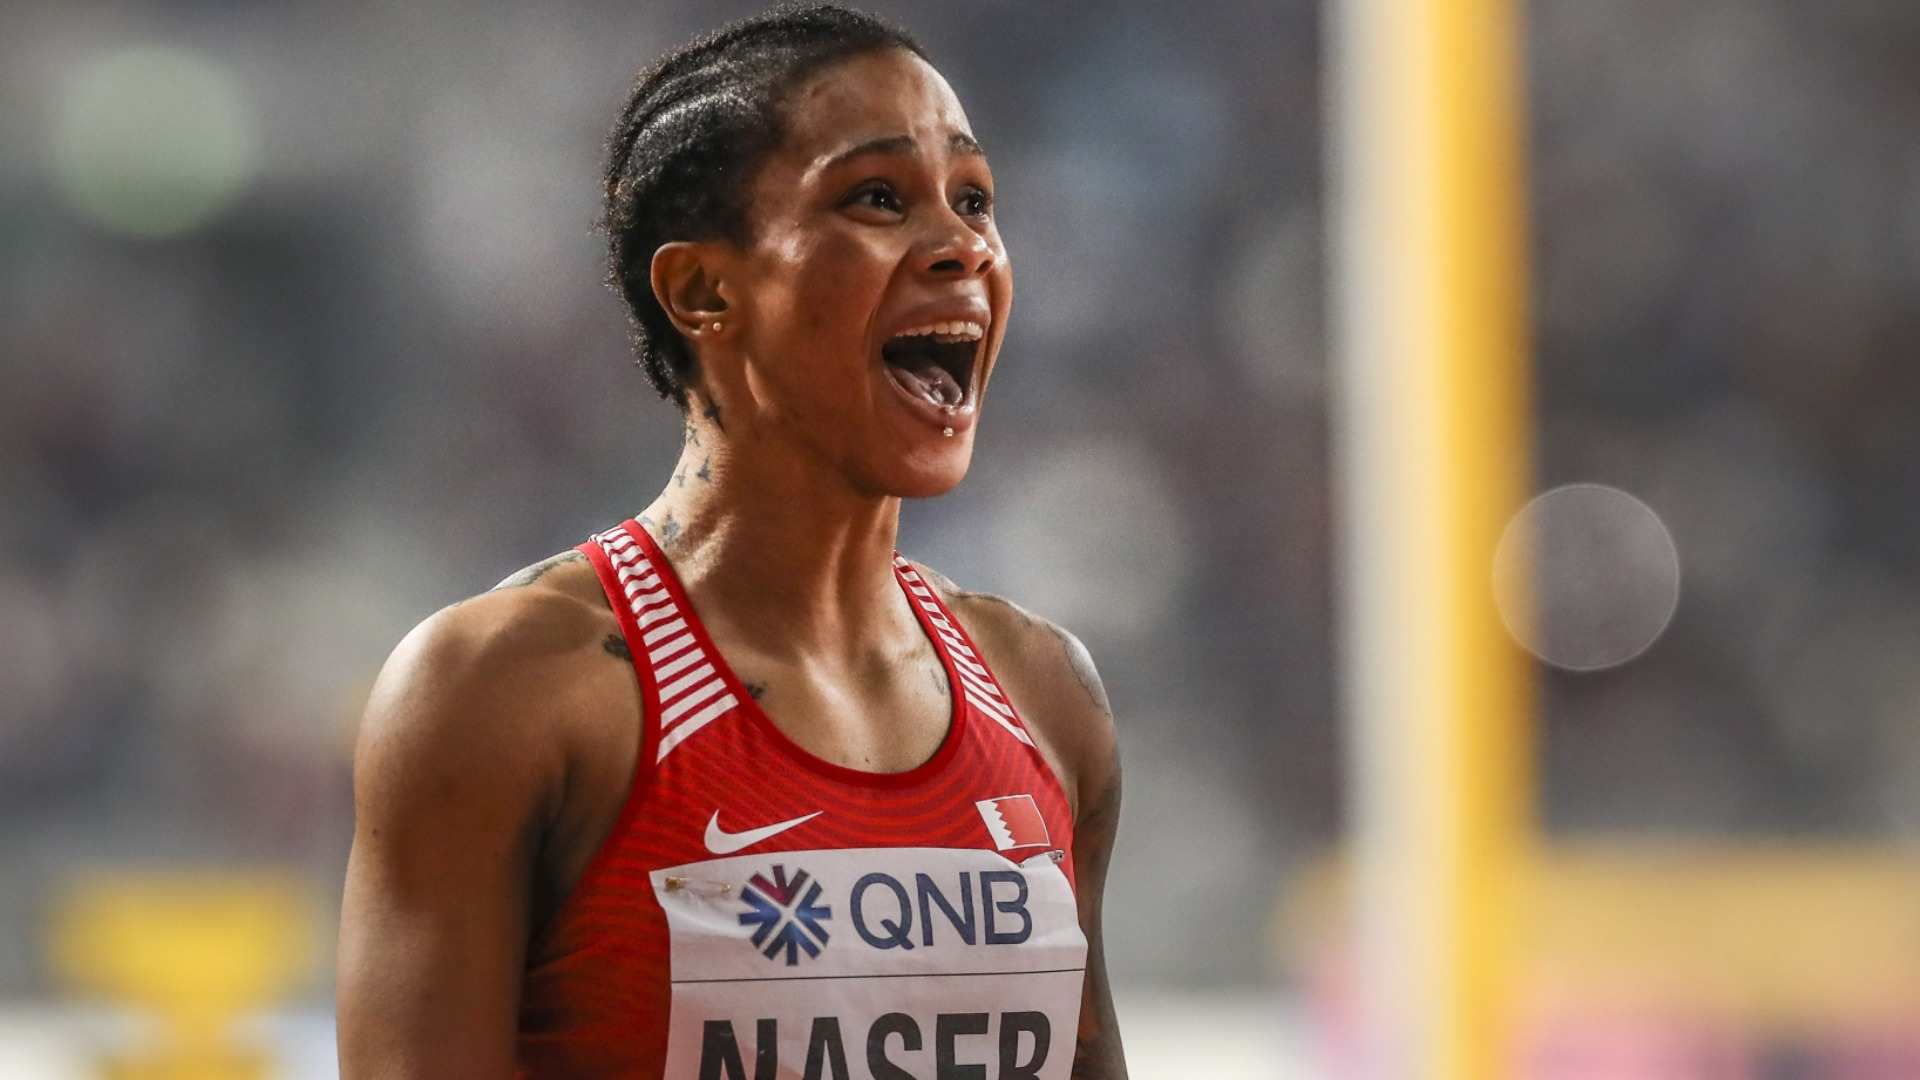 Salwa Eid Naser anti-doping charges dismissed